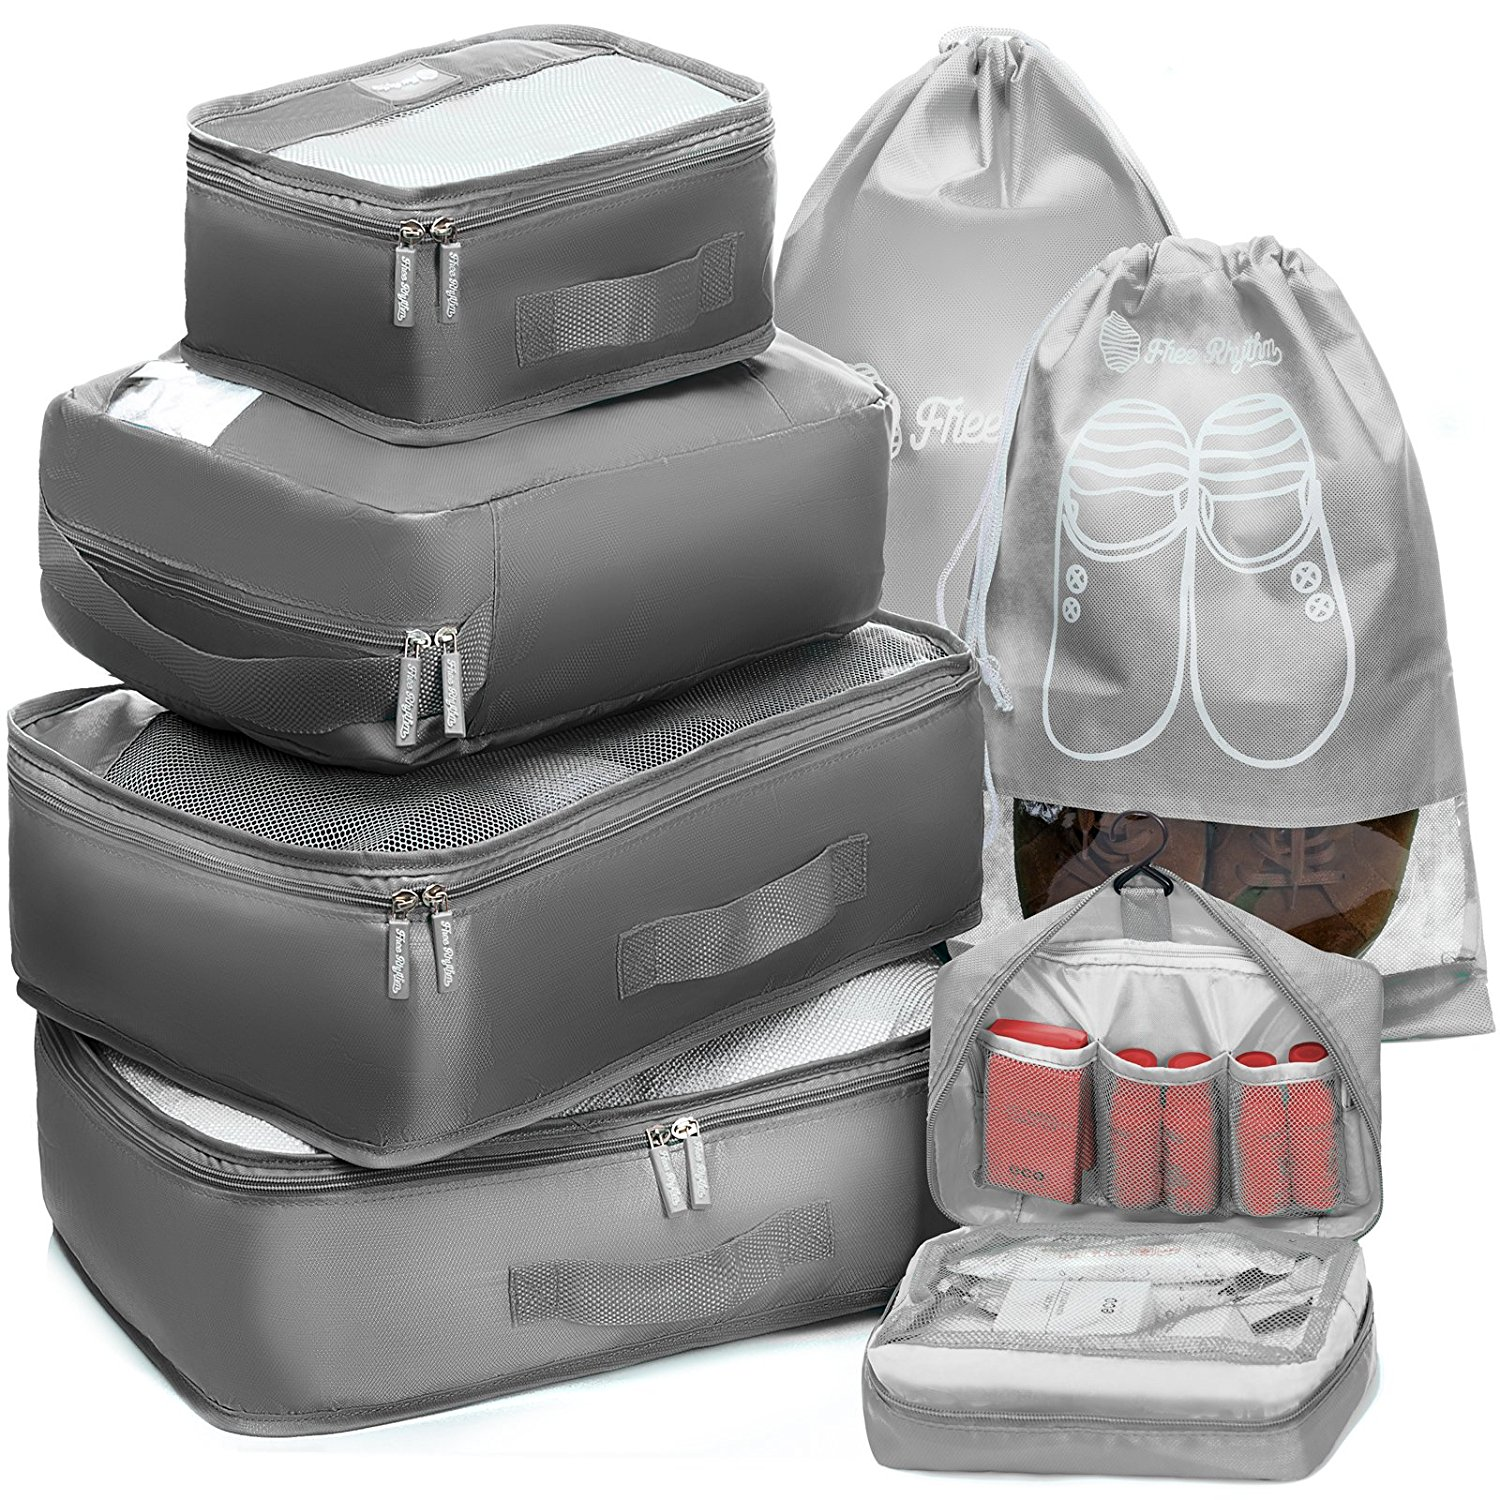 Packing Cubes - Organise your entire suitcase and forget about searching for some stuff for ages.